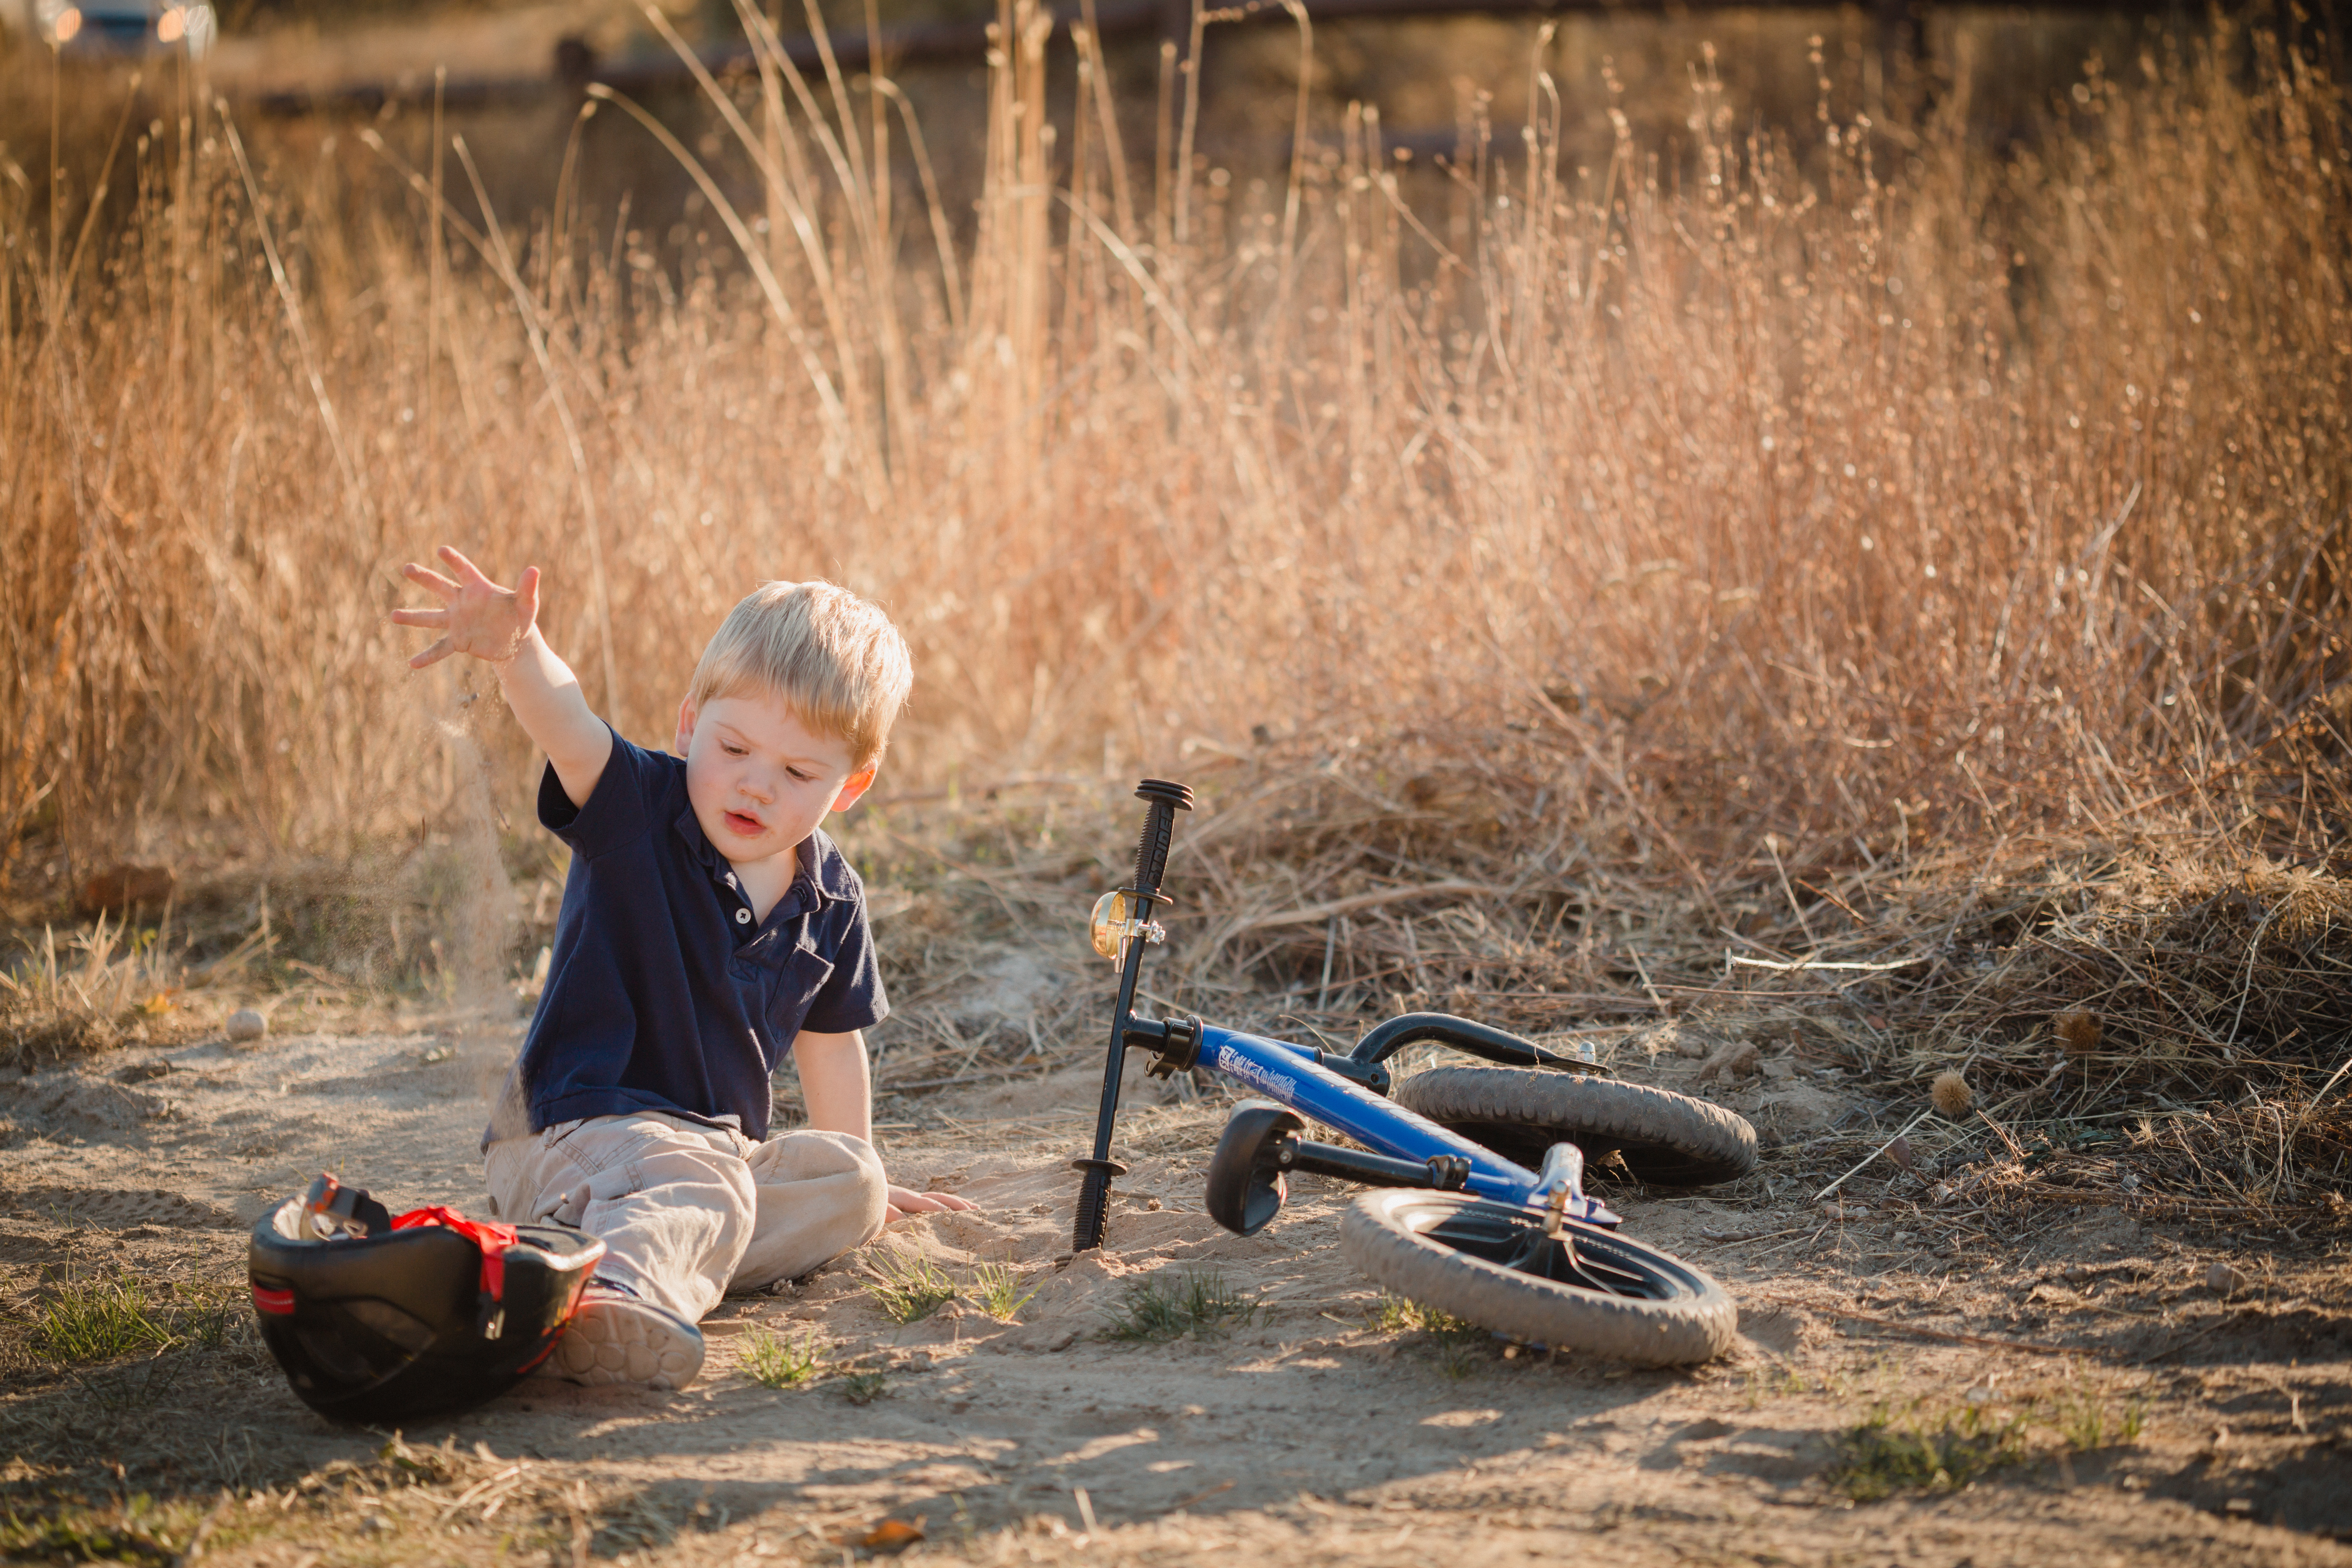 boy playing in dirt next to bike